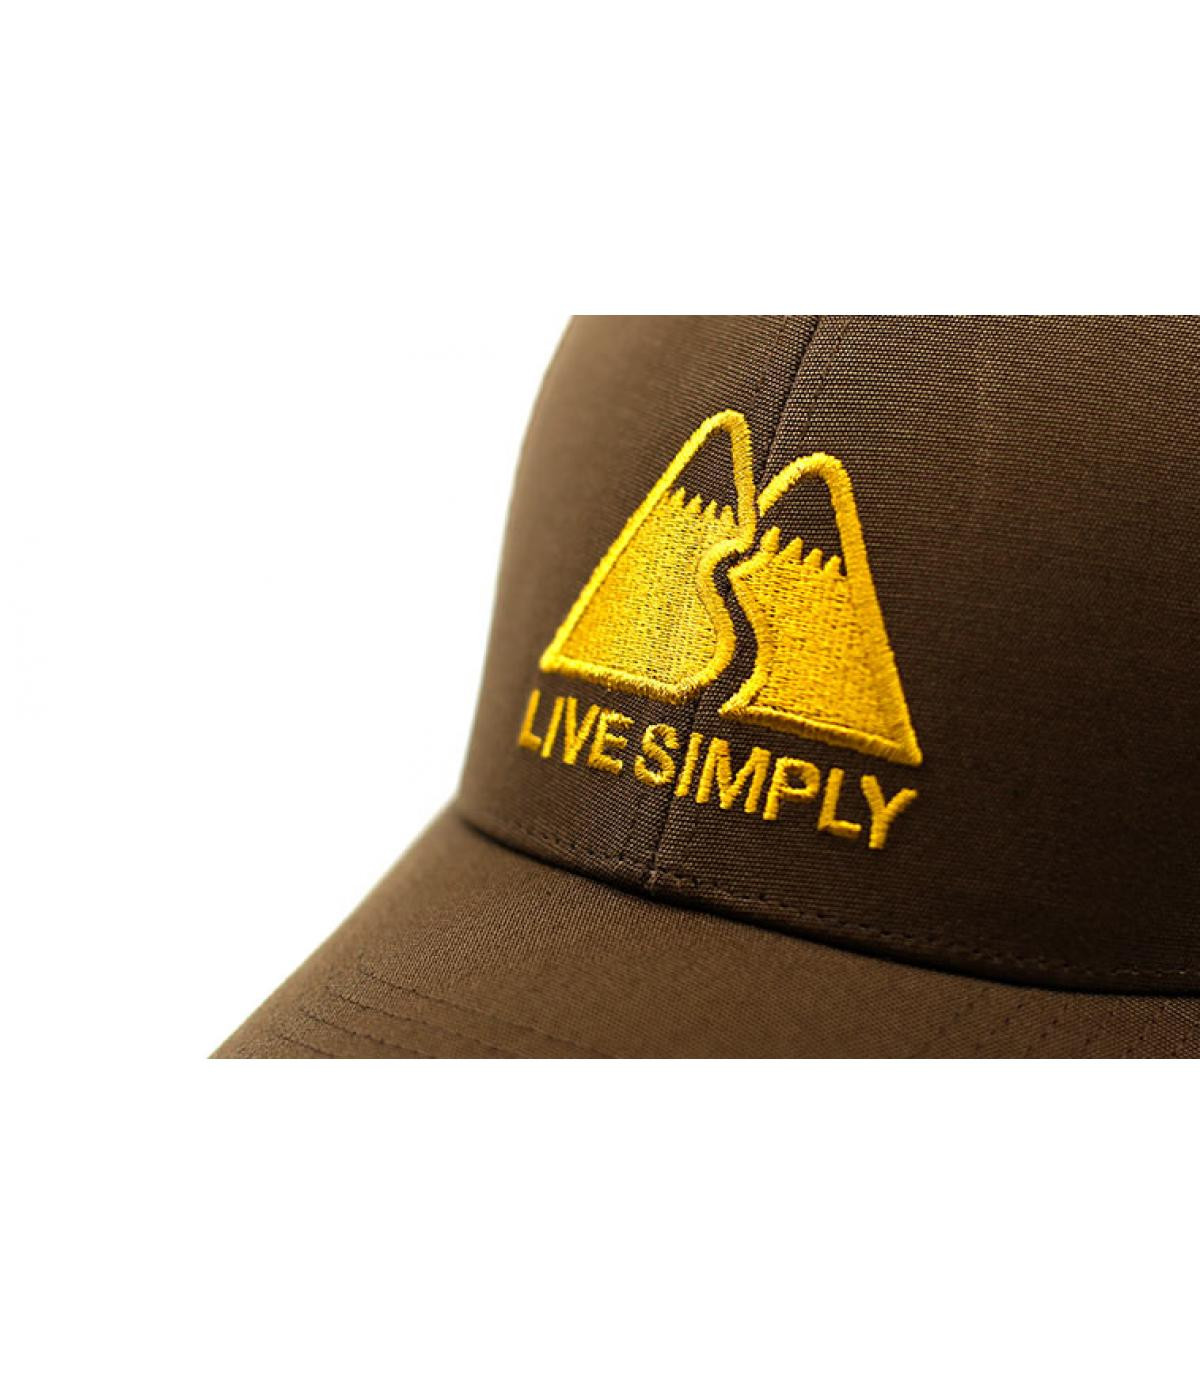 Détails Live Simply LoPro Trucker timber brown - image 3